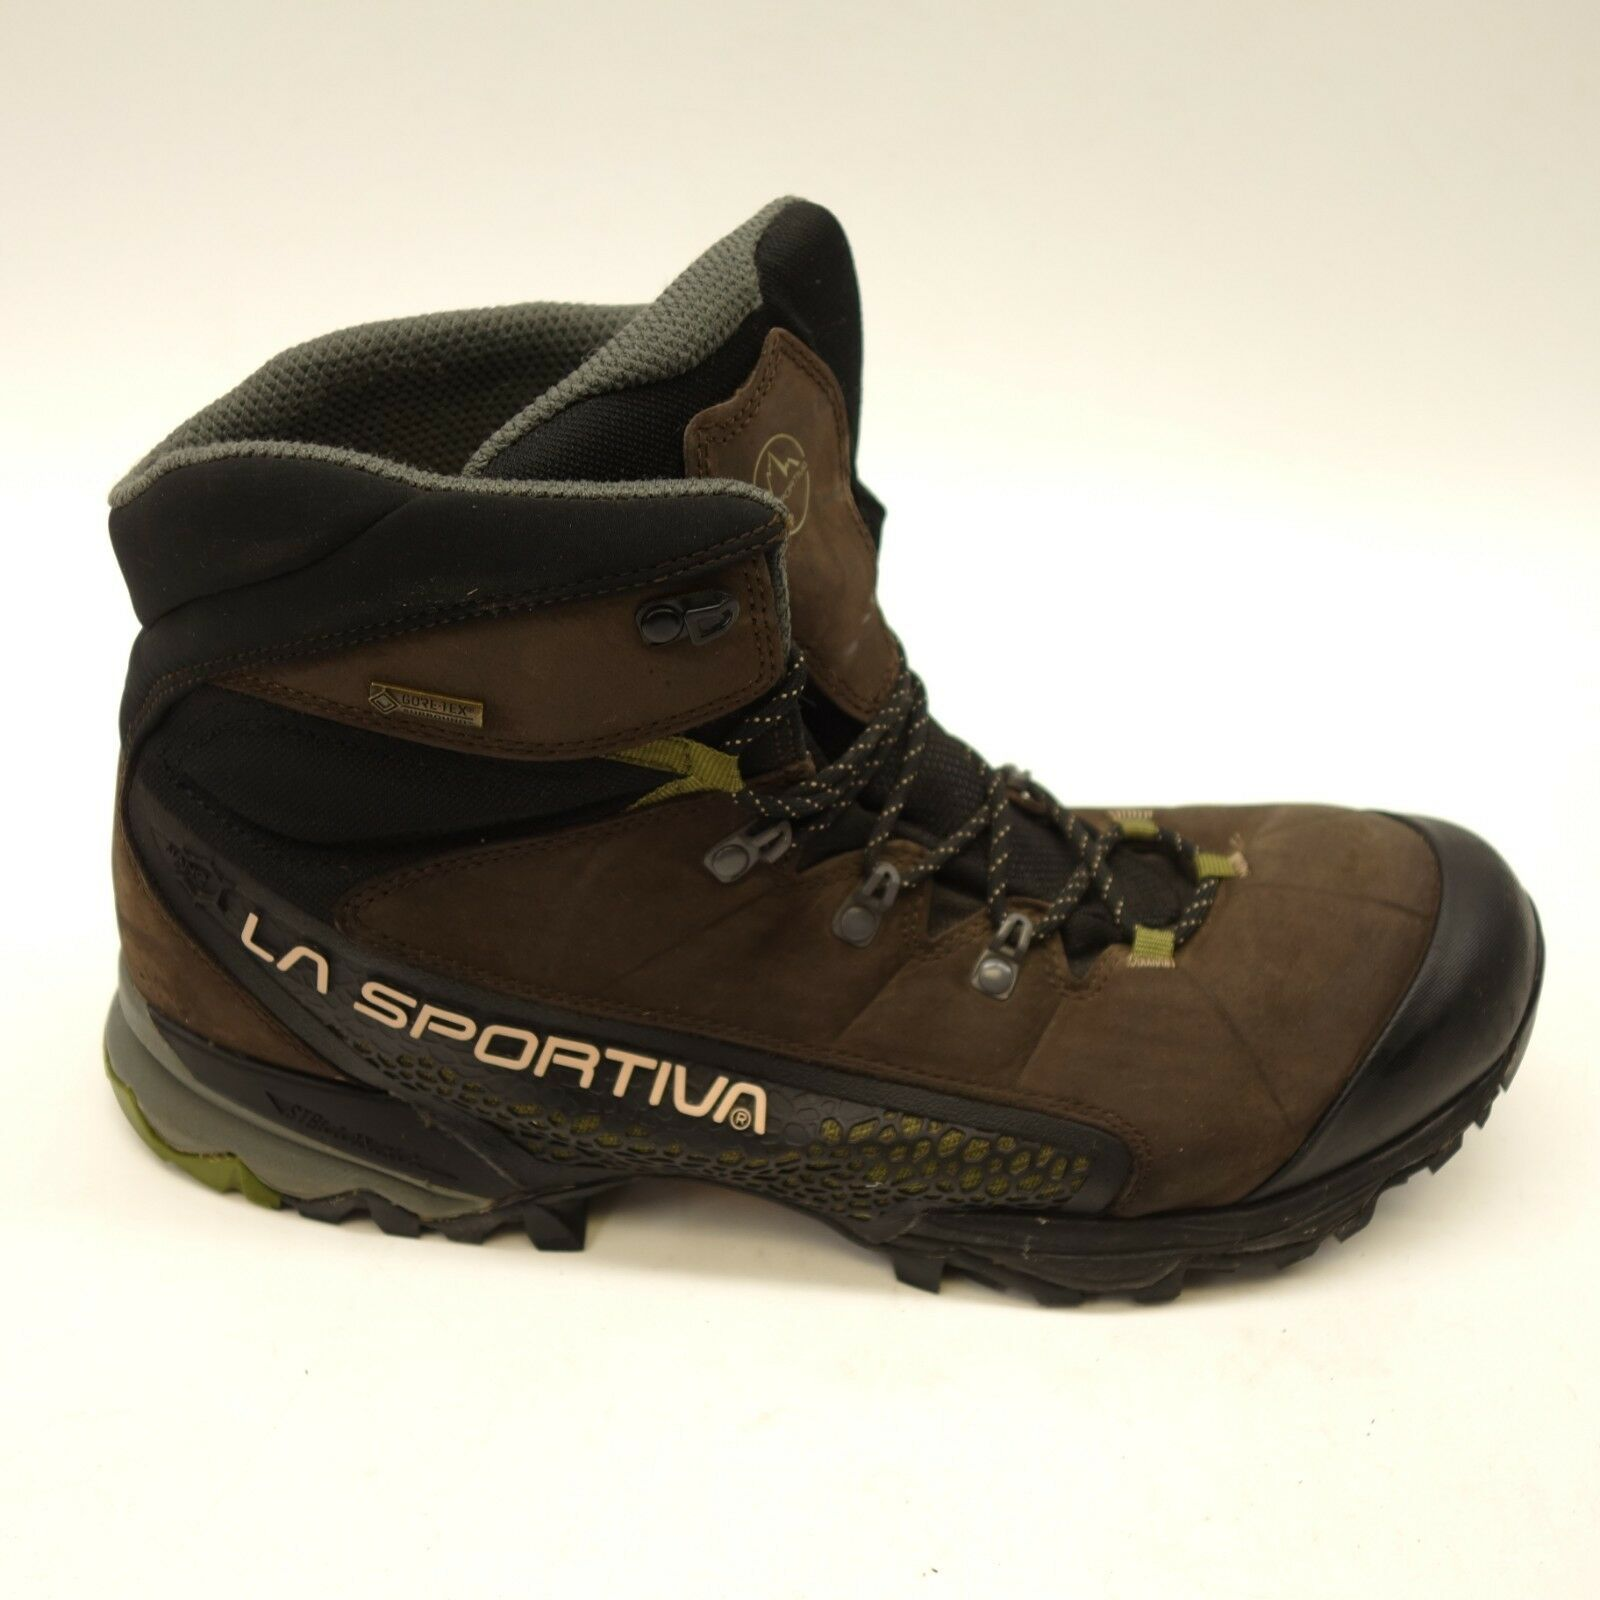 low priced 4d70f 62924 La Sportiva Mens Nucleo High GTX WP Athletic Hiking Stiefel Stiefel Stiefel  Größe US 13 EU 47 373d15